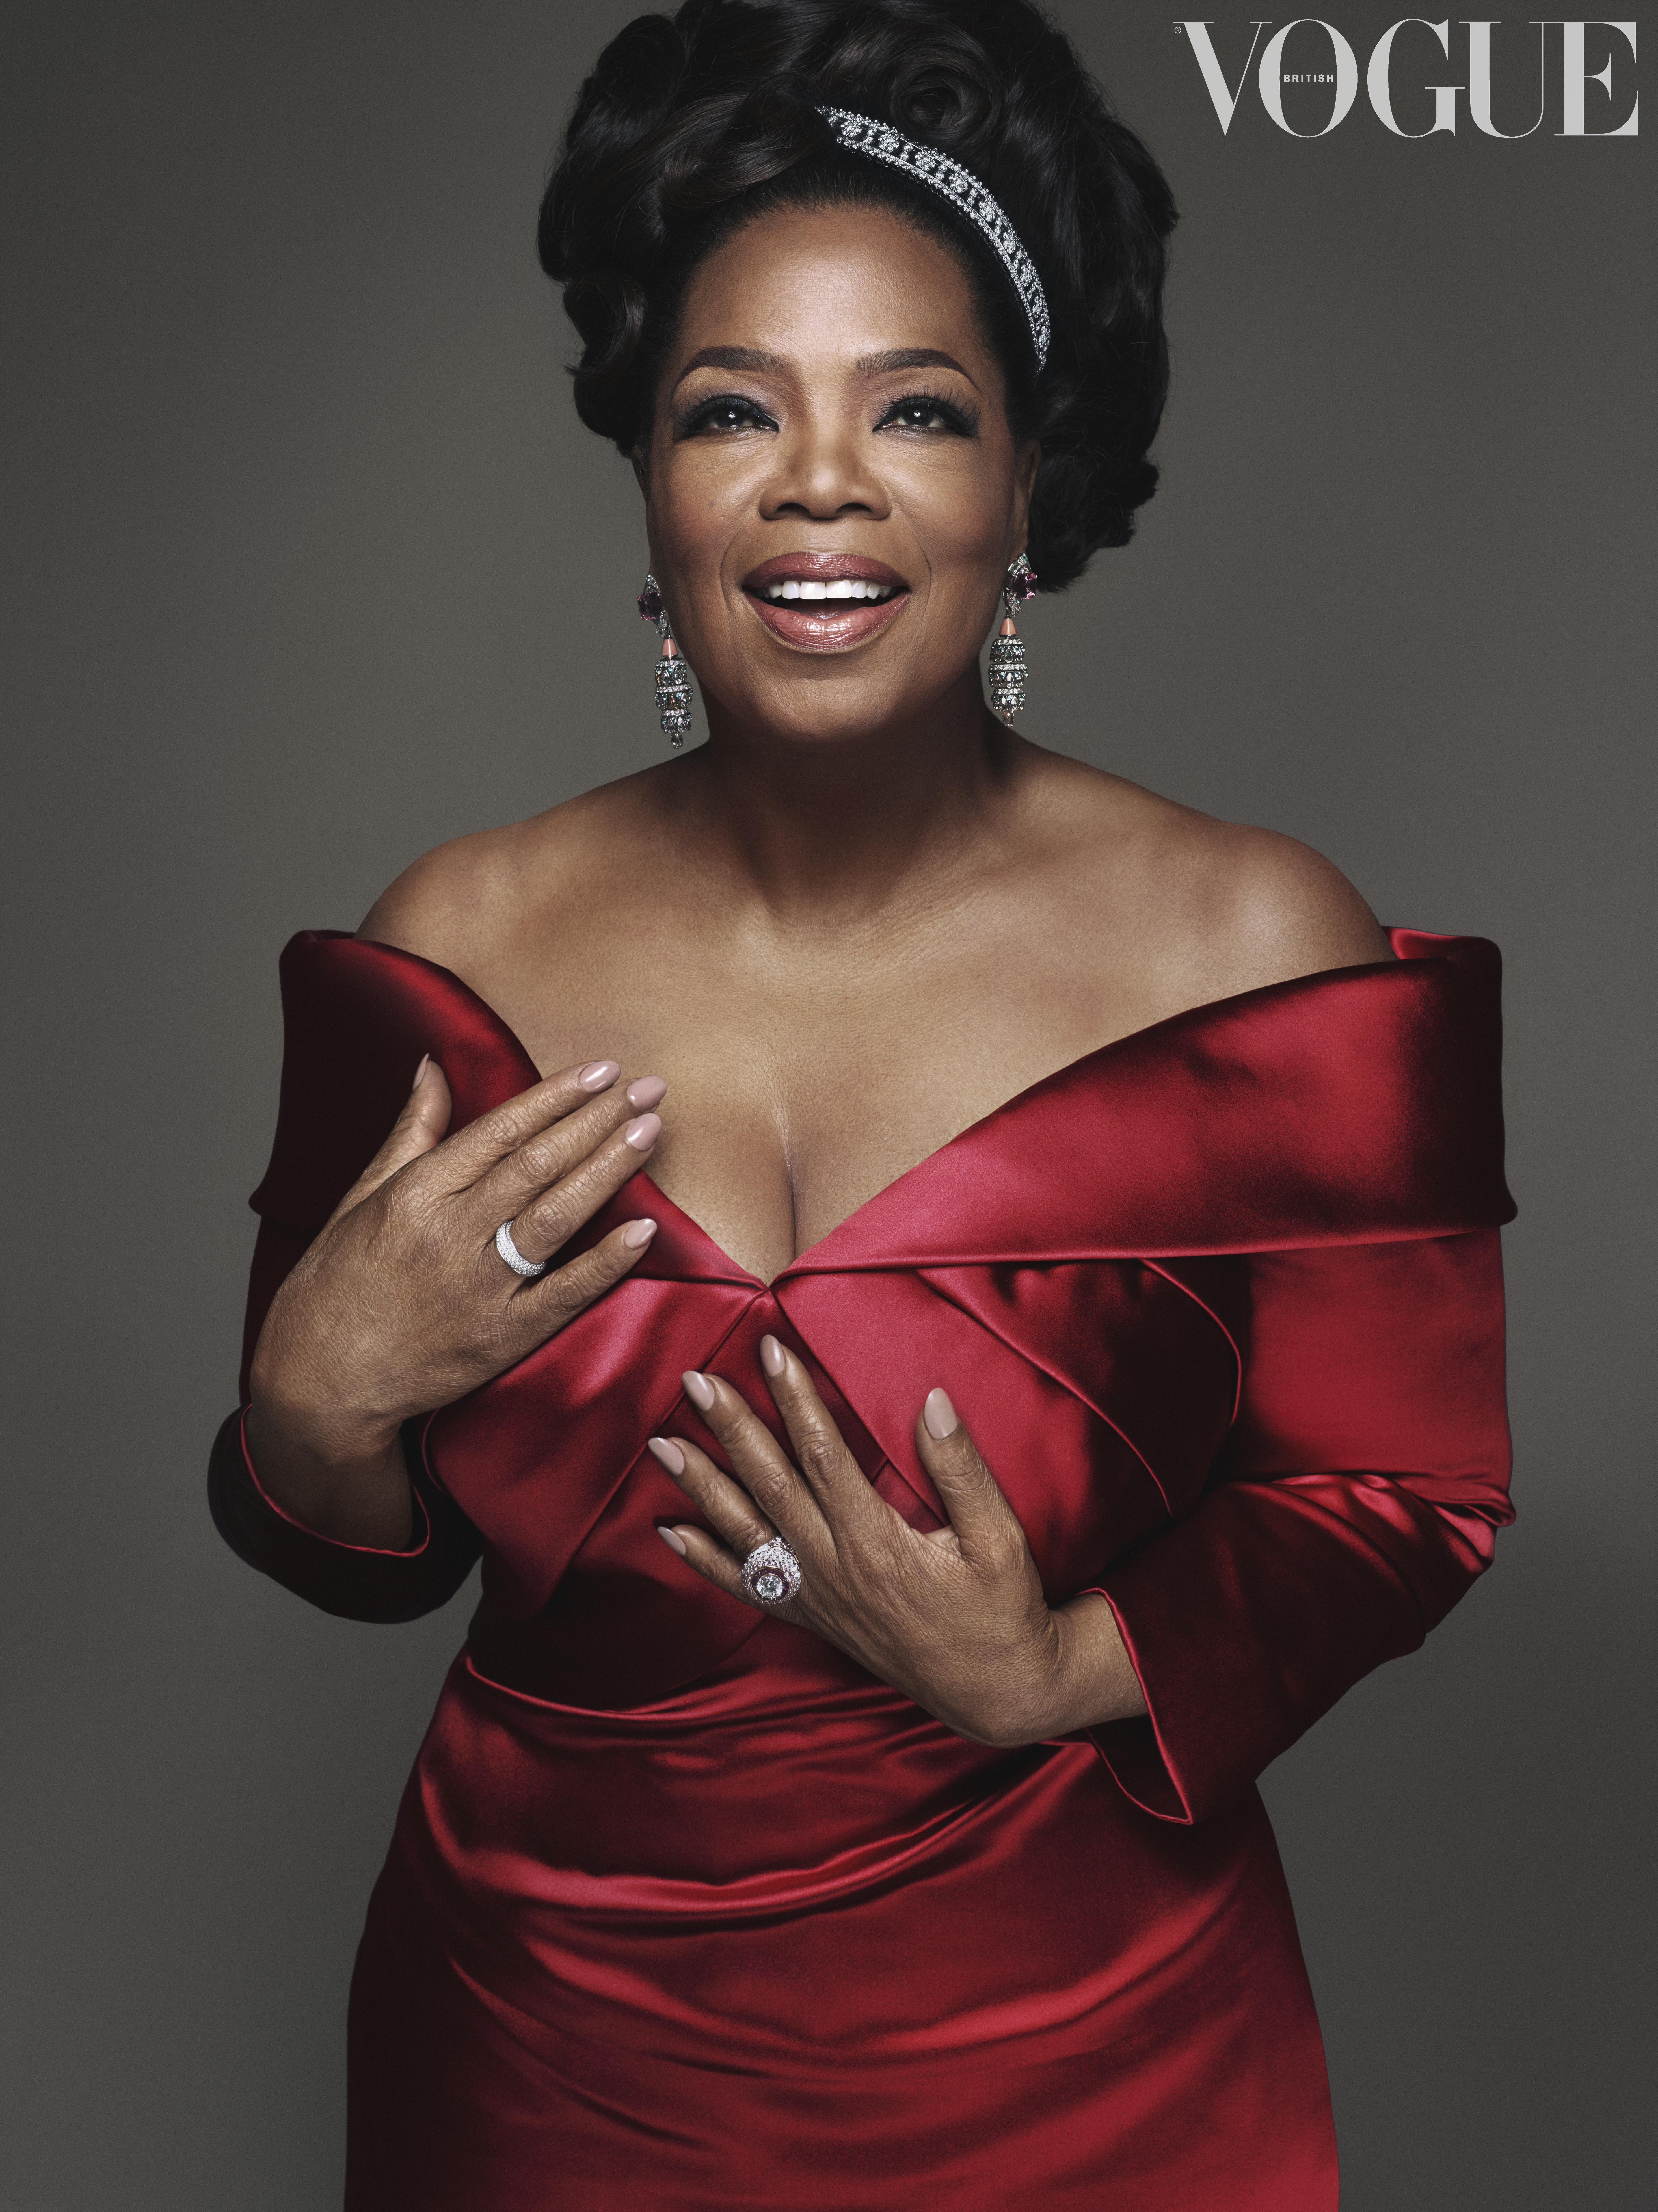 Oprah Winfrey in Vogue